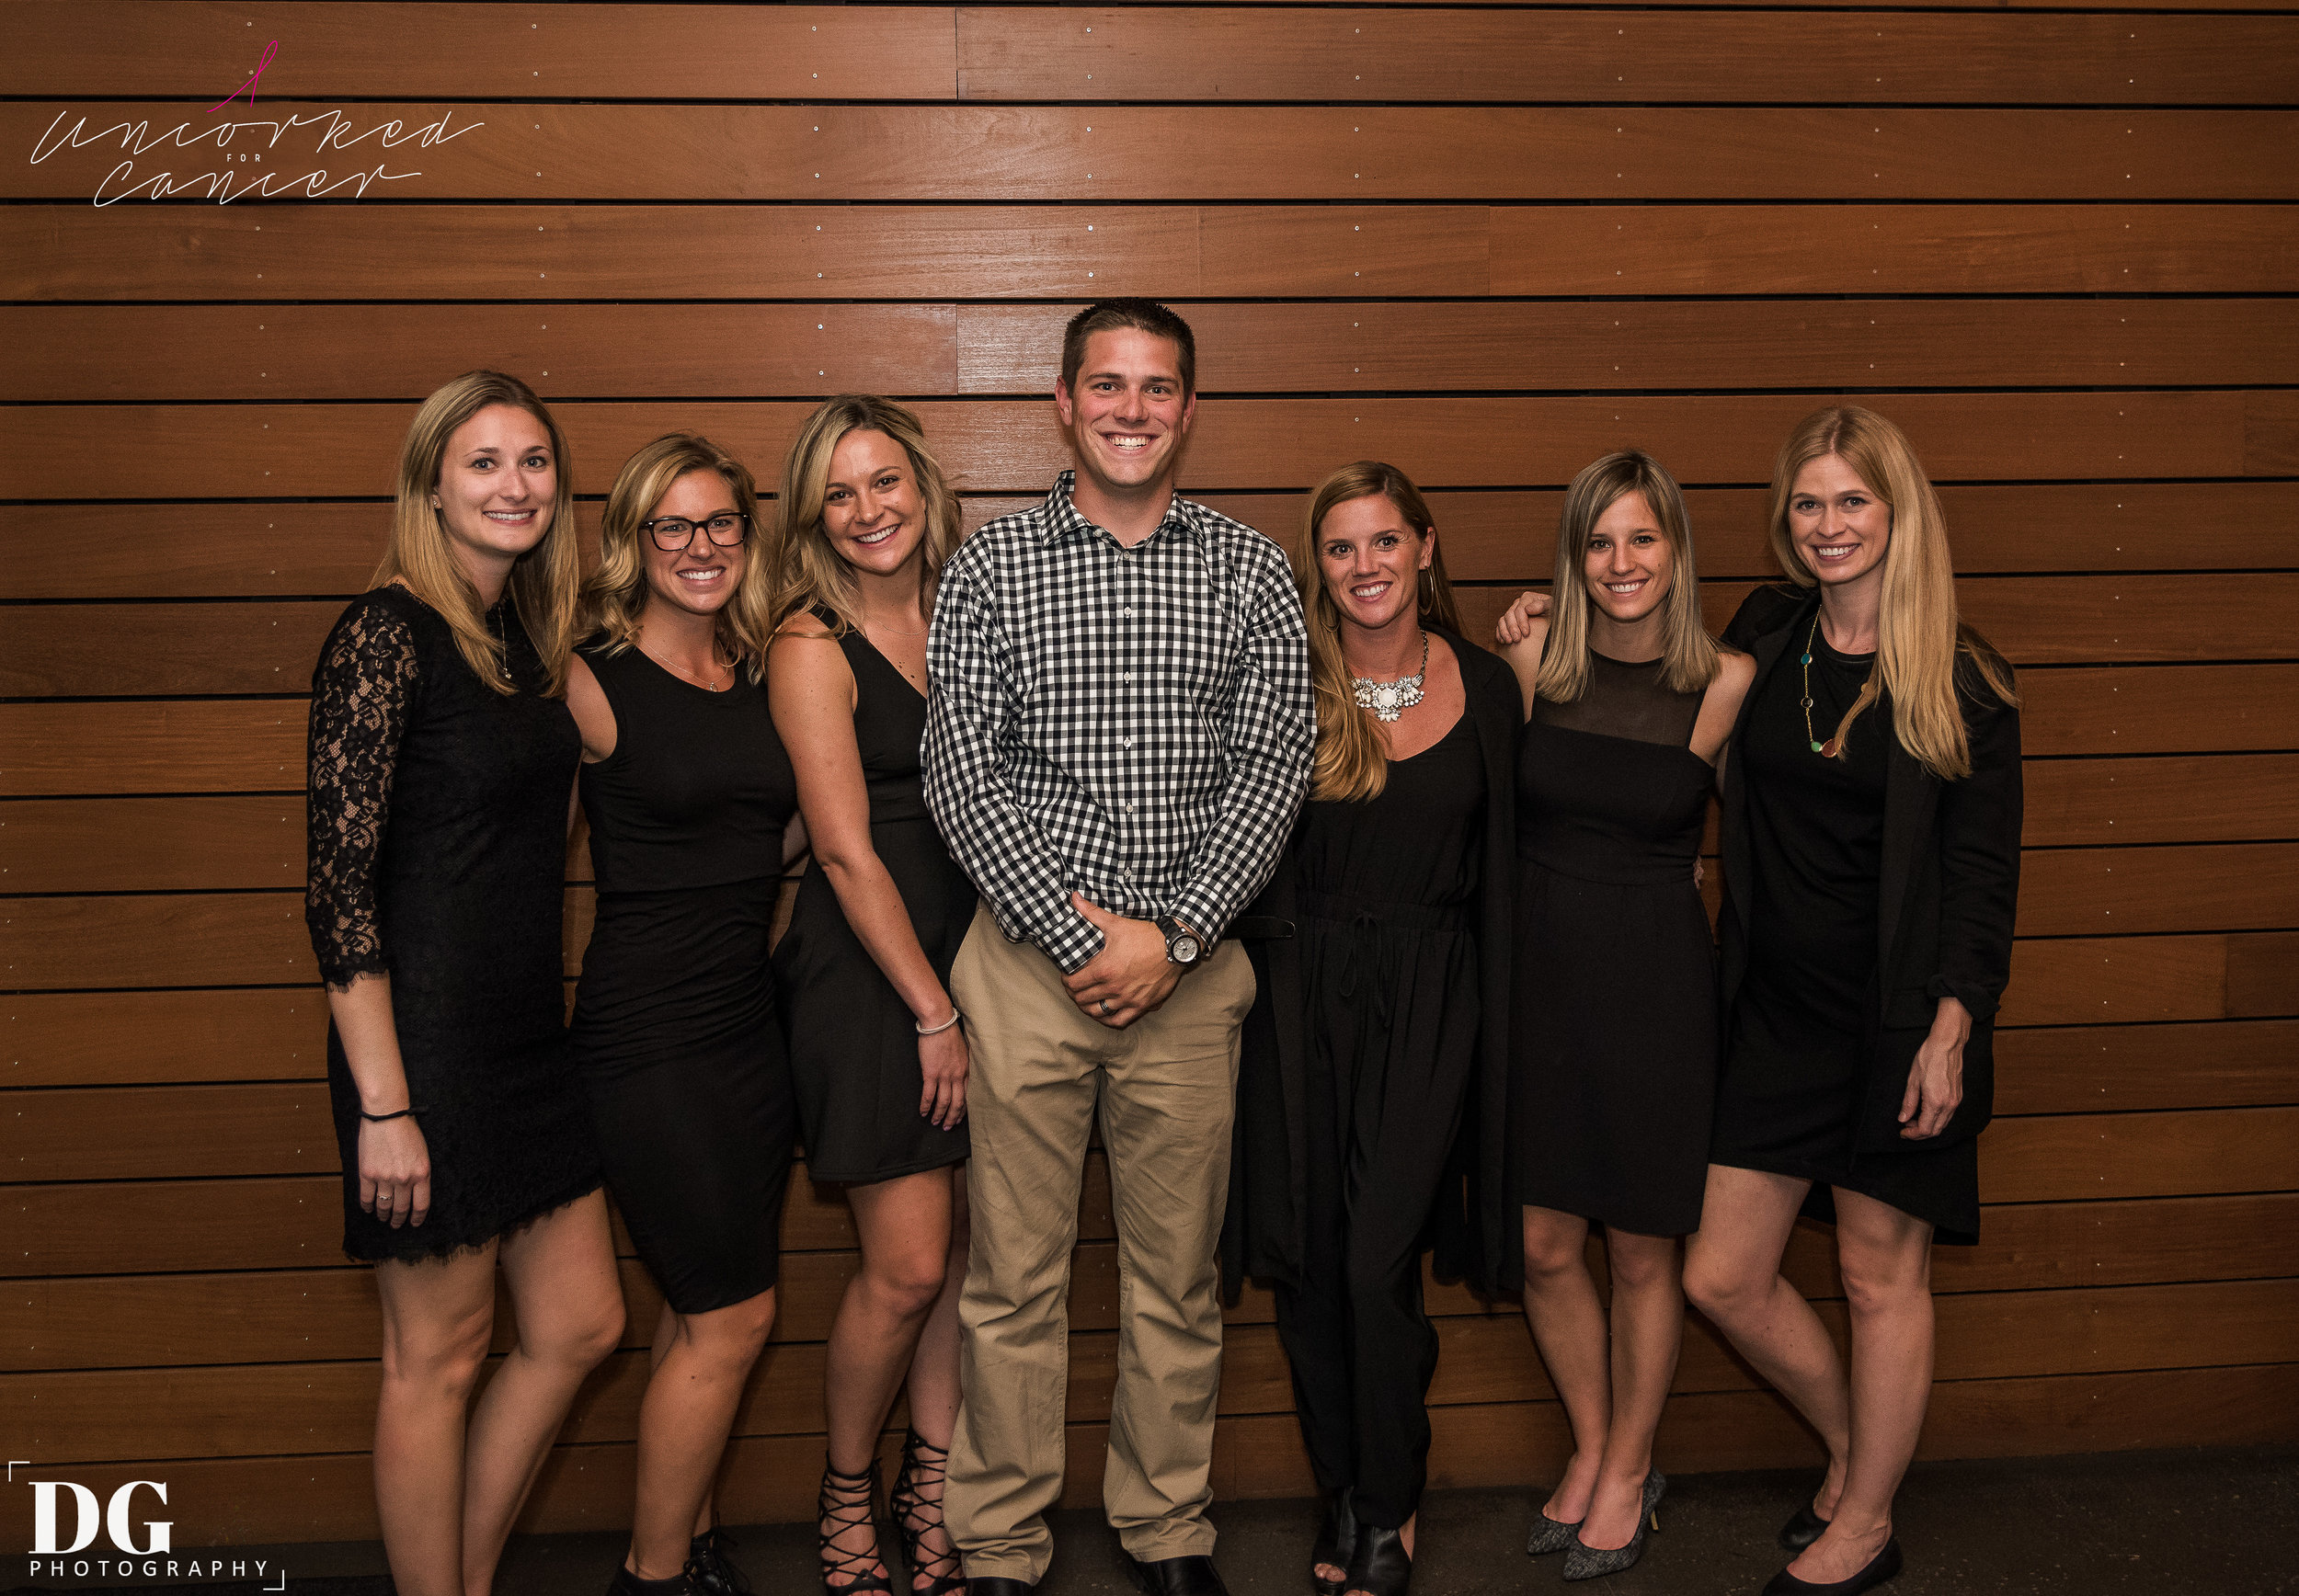 Board Member (from left to right): Christine Schoening, Emma Stolz, Bretlyn Hensley, Jason Hensley, Hannah Lentz, Elisabeth Malik, Jillian Erickson